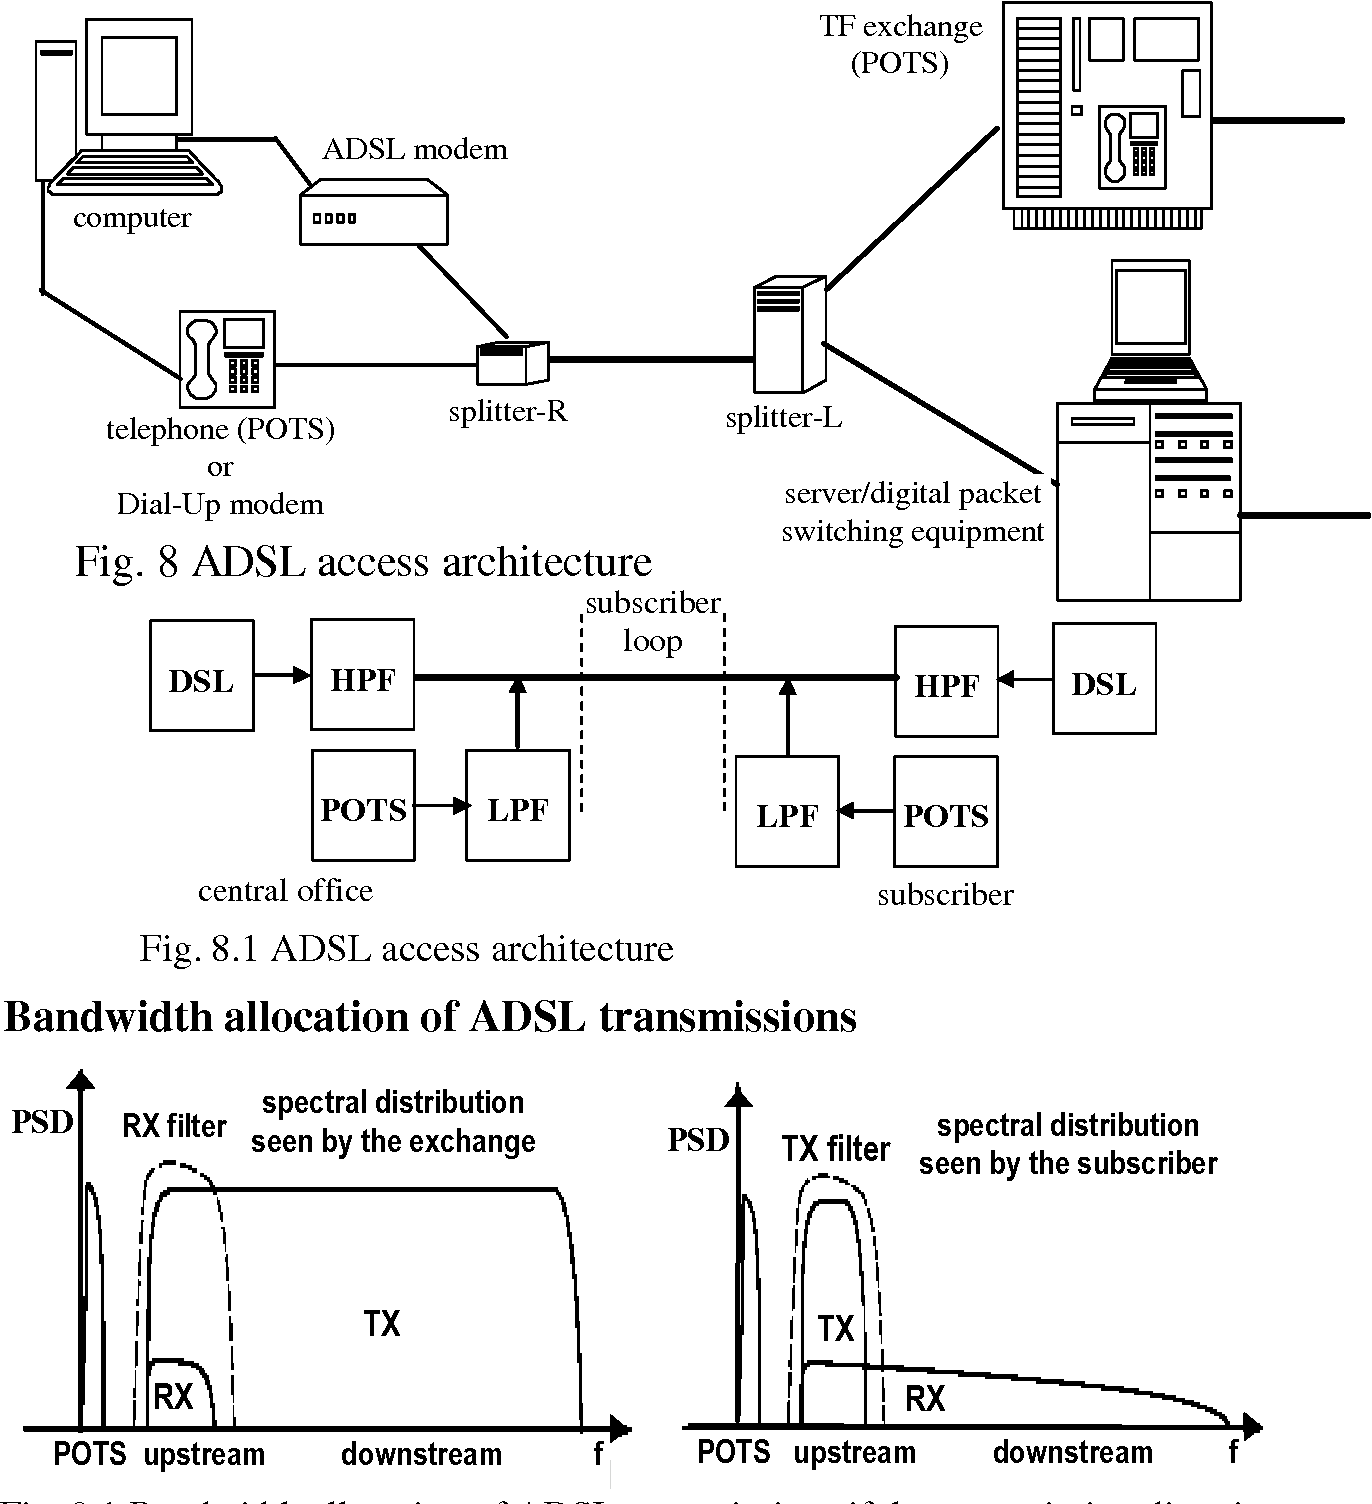 Fig. 8 ADSL access architecture